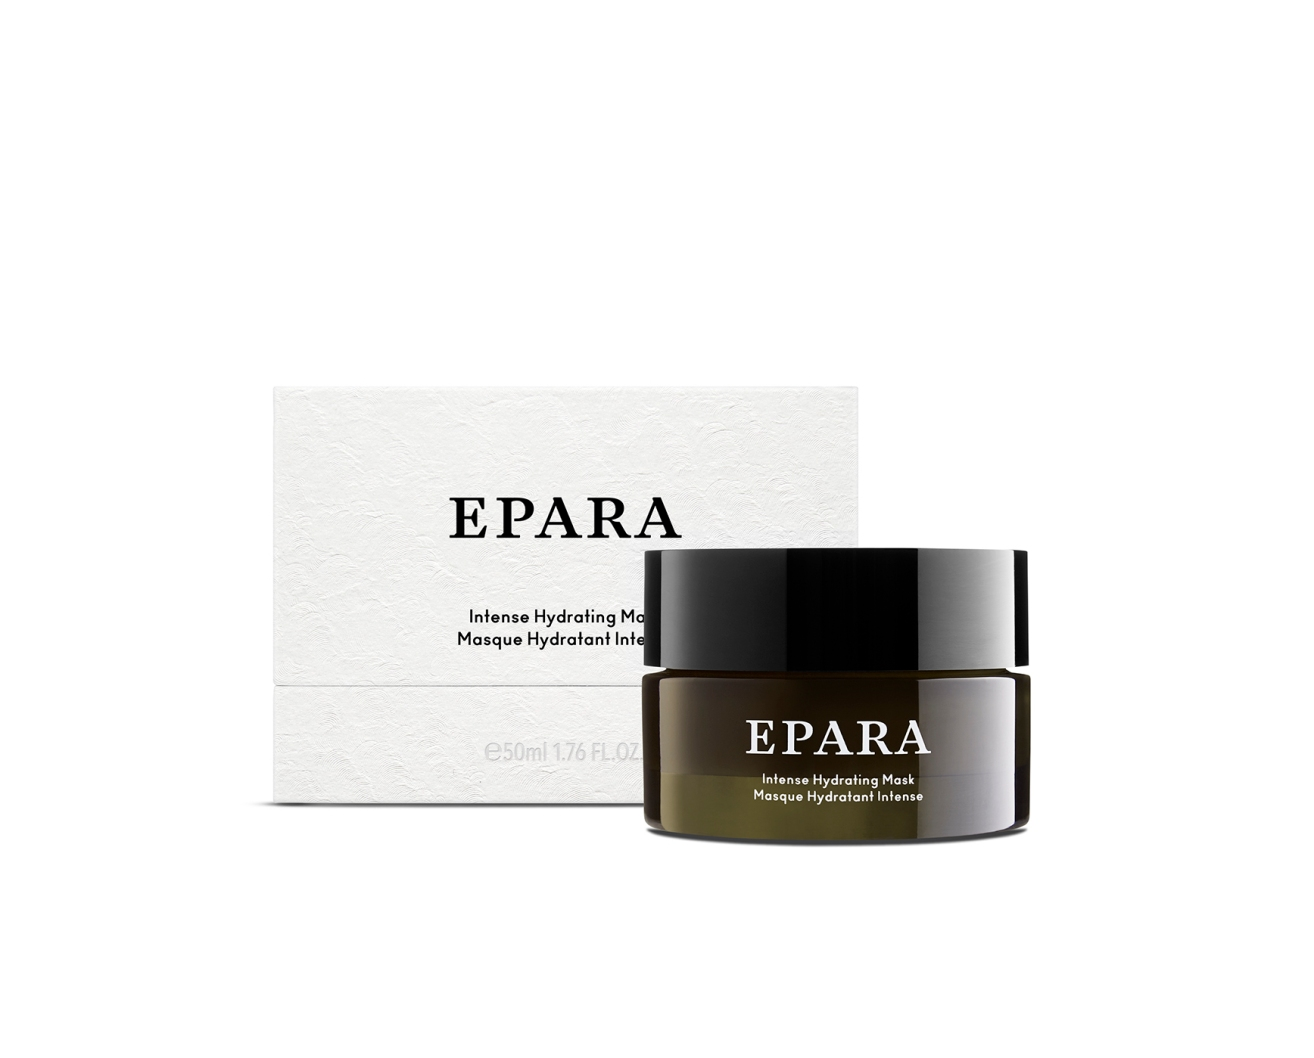 S-J_Epara_Product_50ml_IntensiveHydratingMask_HiRes_RGB